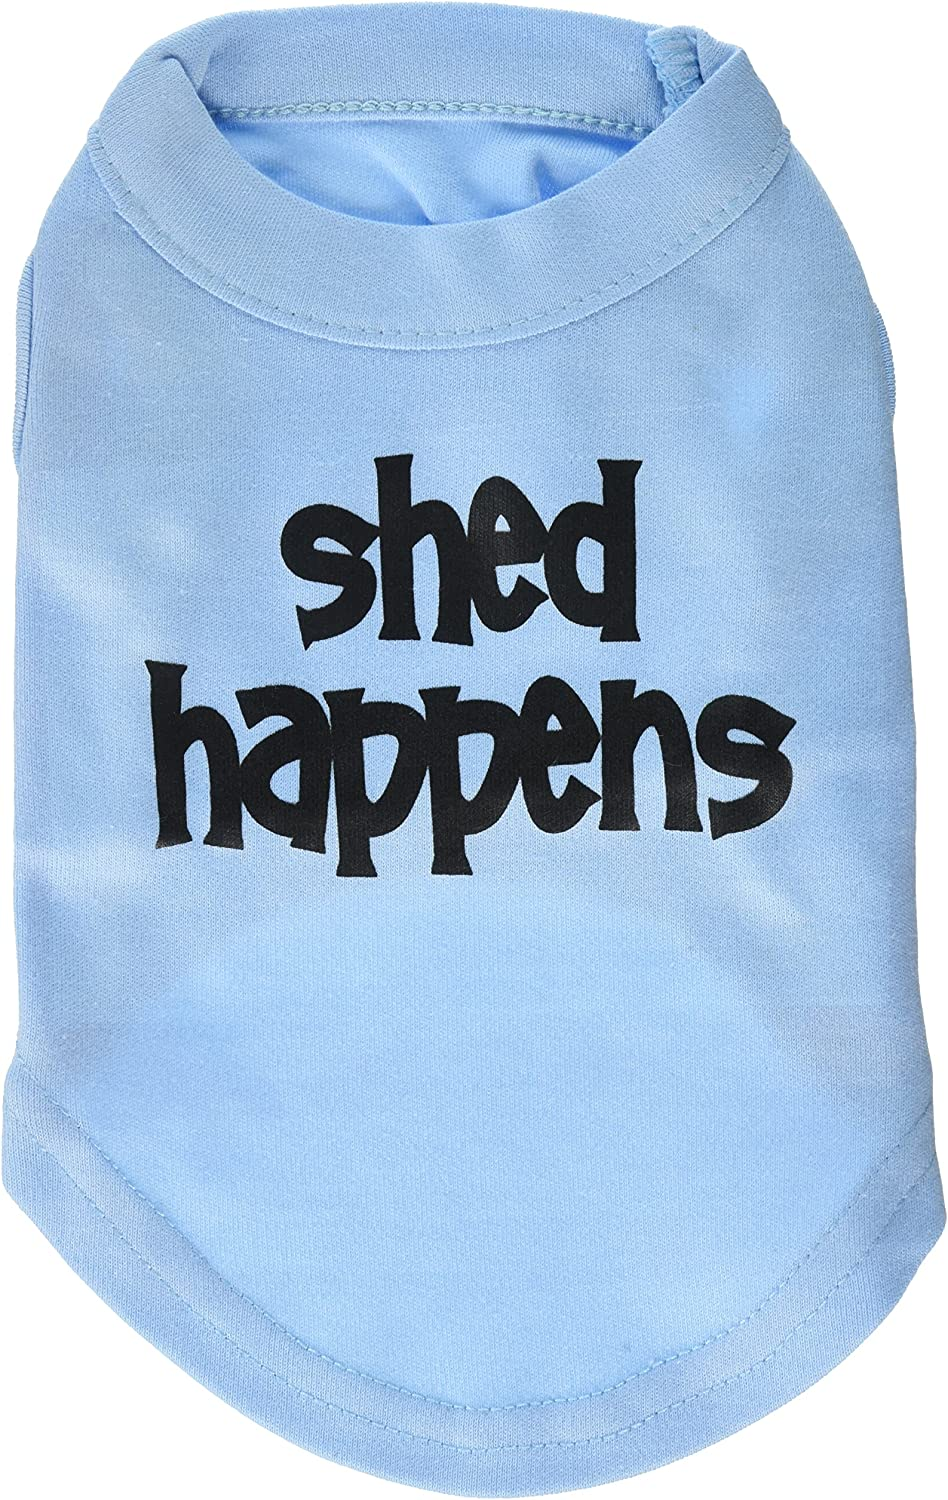 Mirage Pet Products 8Inch Shed Happens Screen Print Shirts for Pets, XSmall, Baby bluee